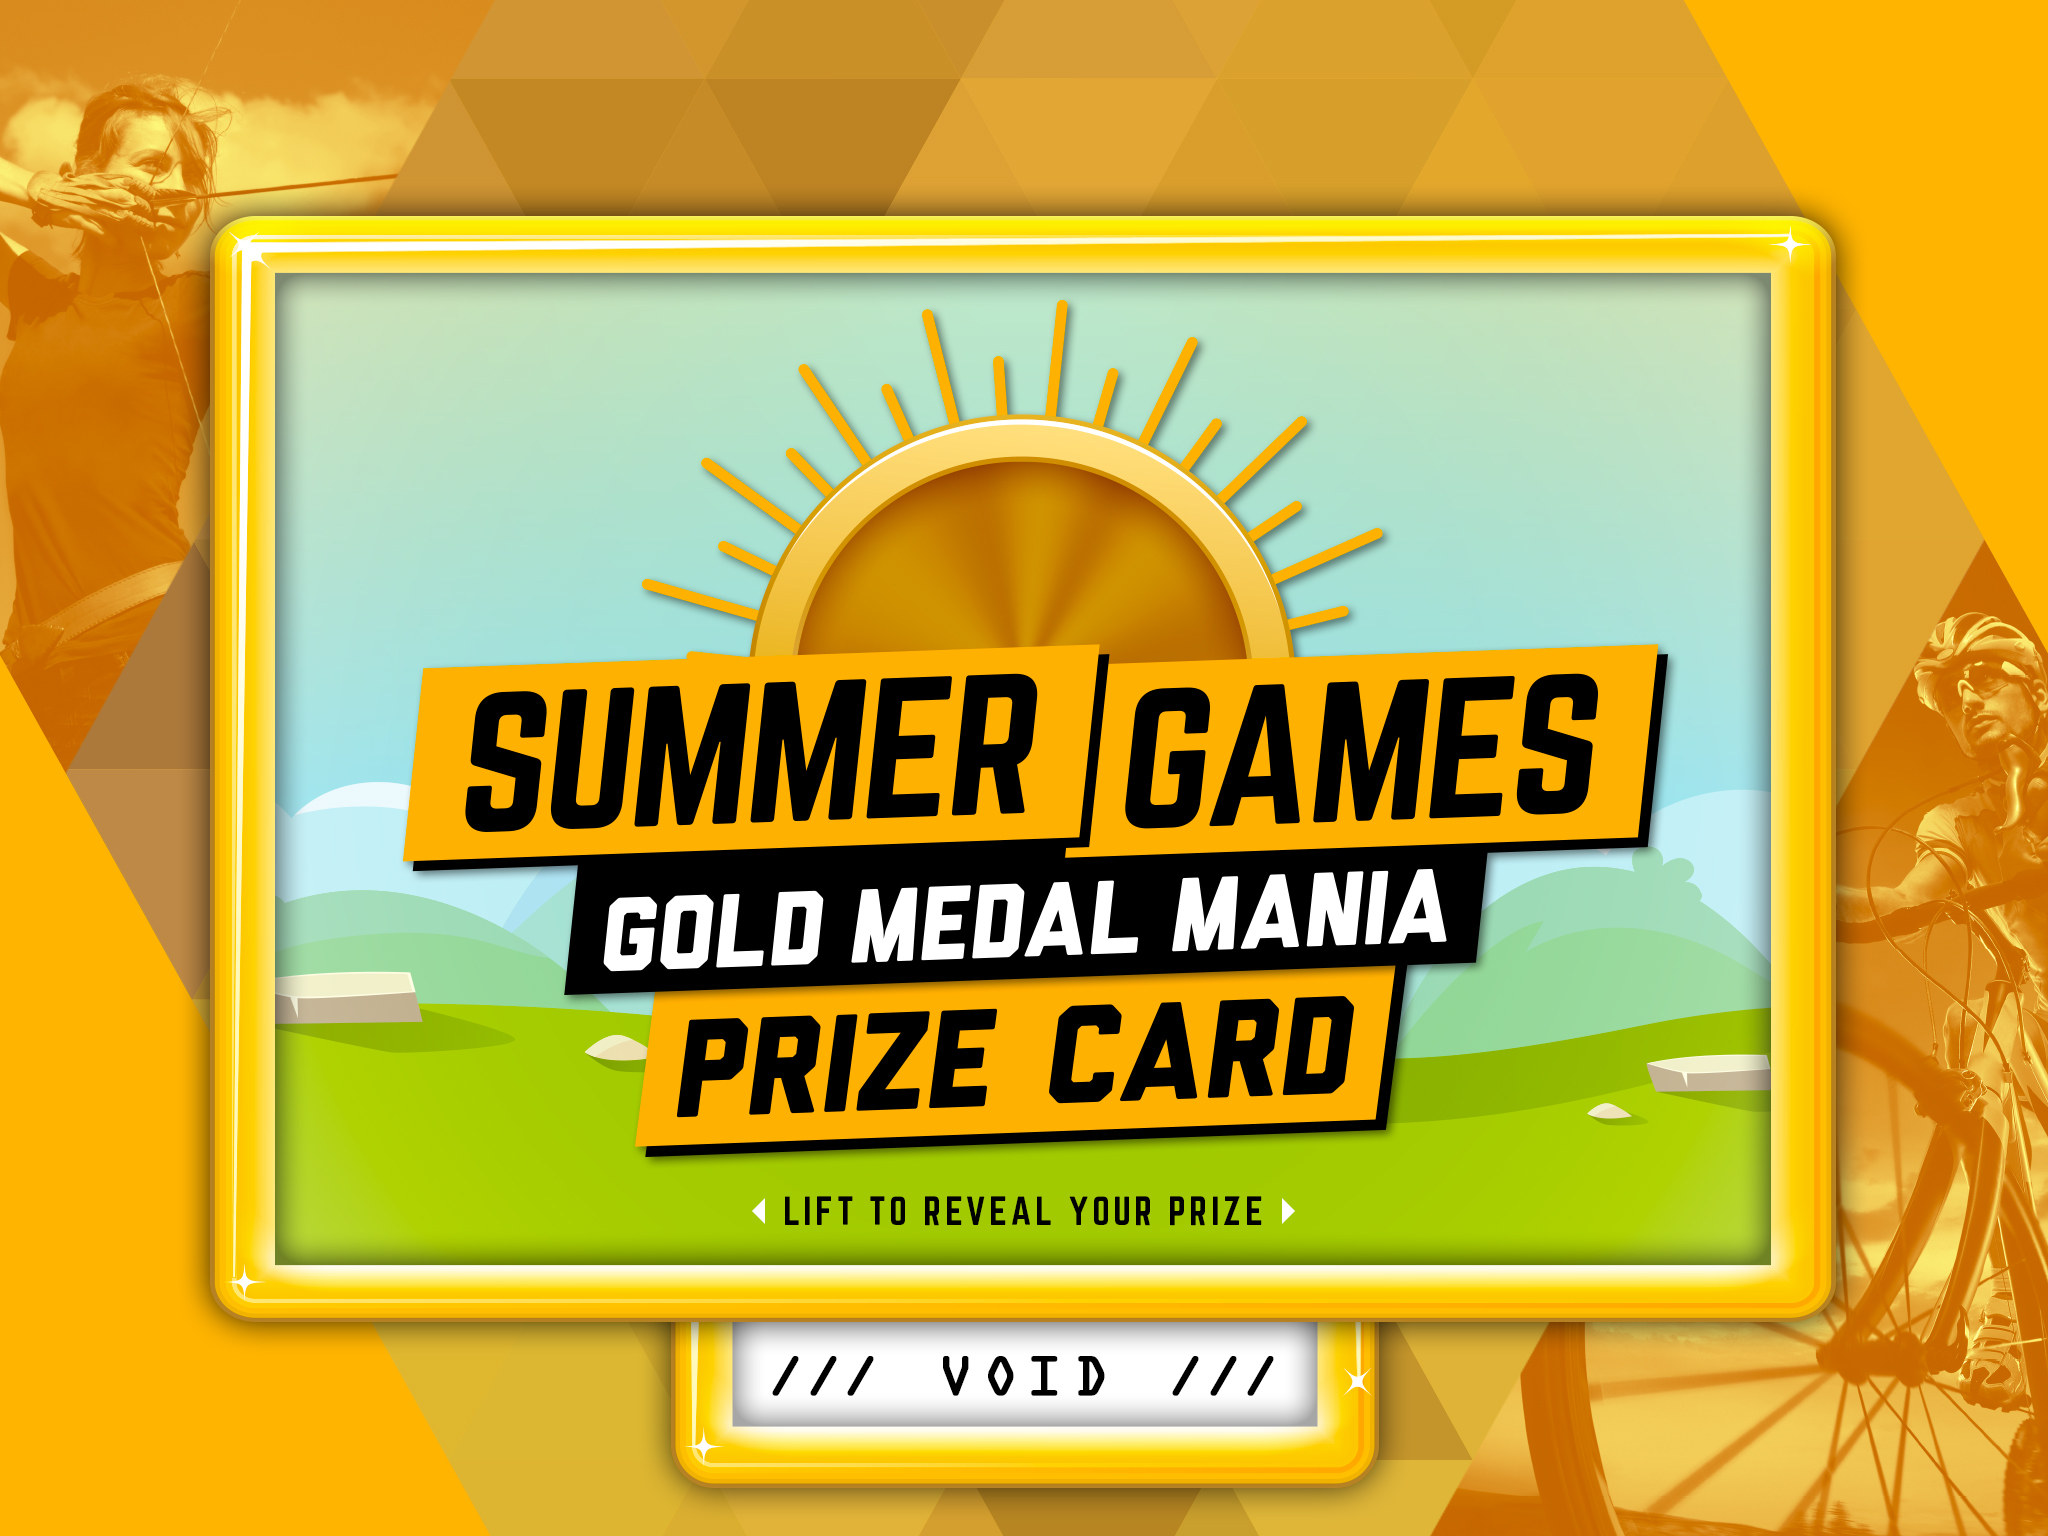 Summer Games Pull-Tab Card